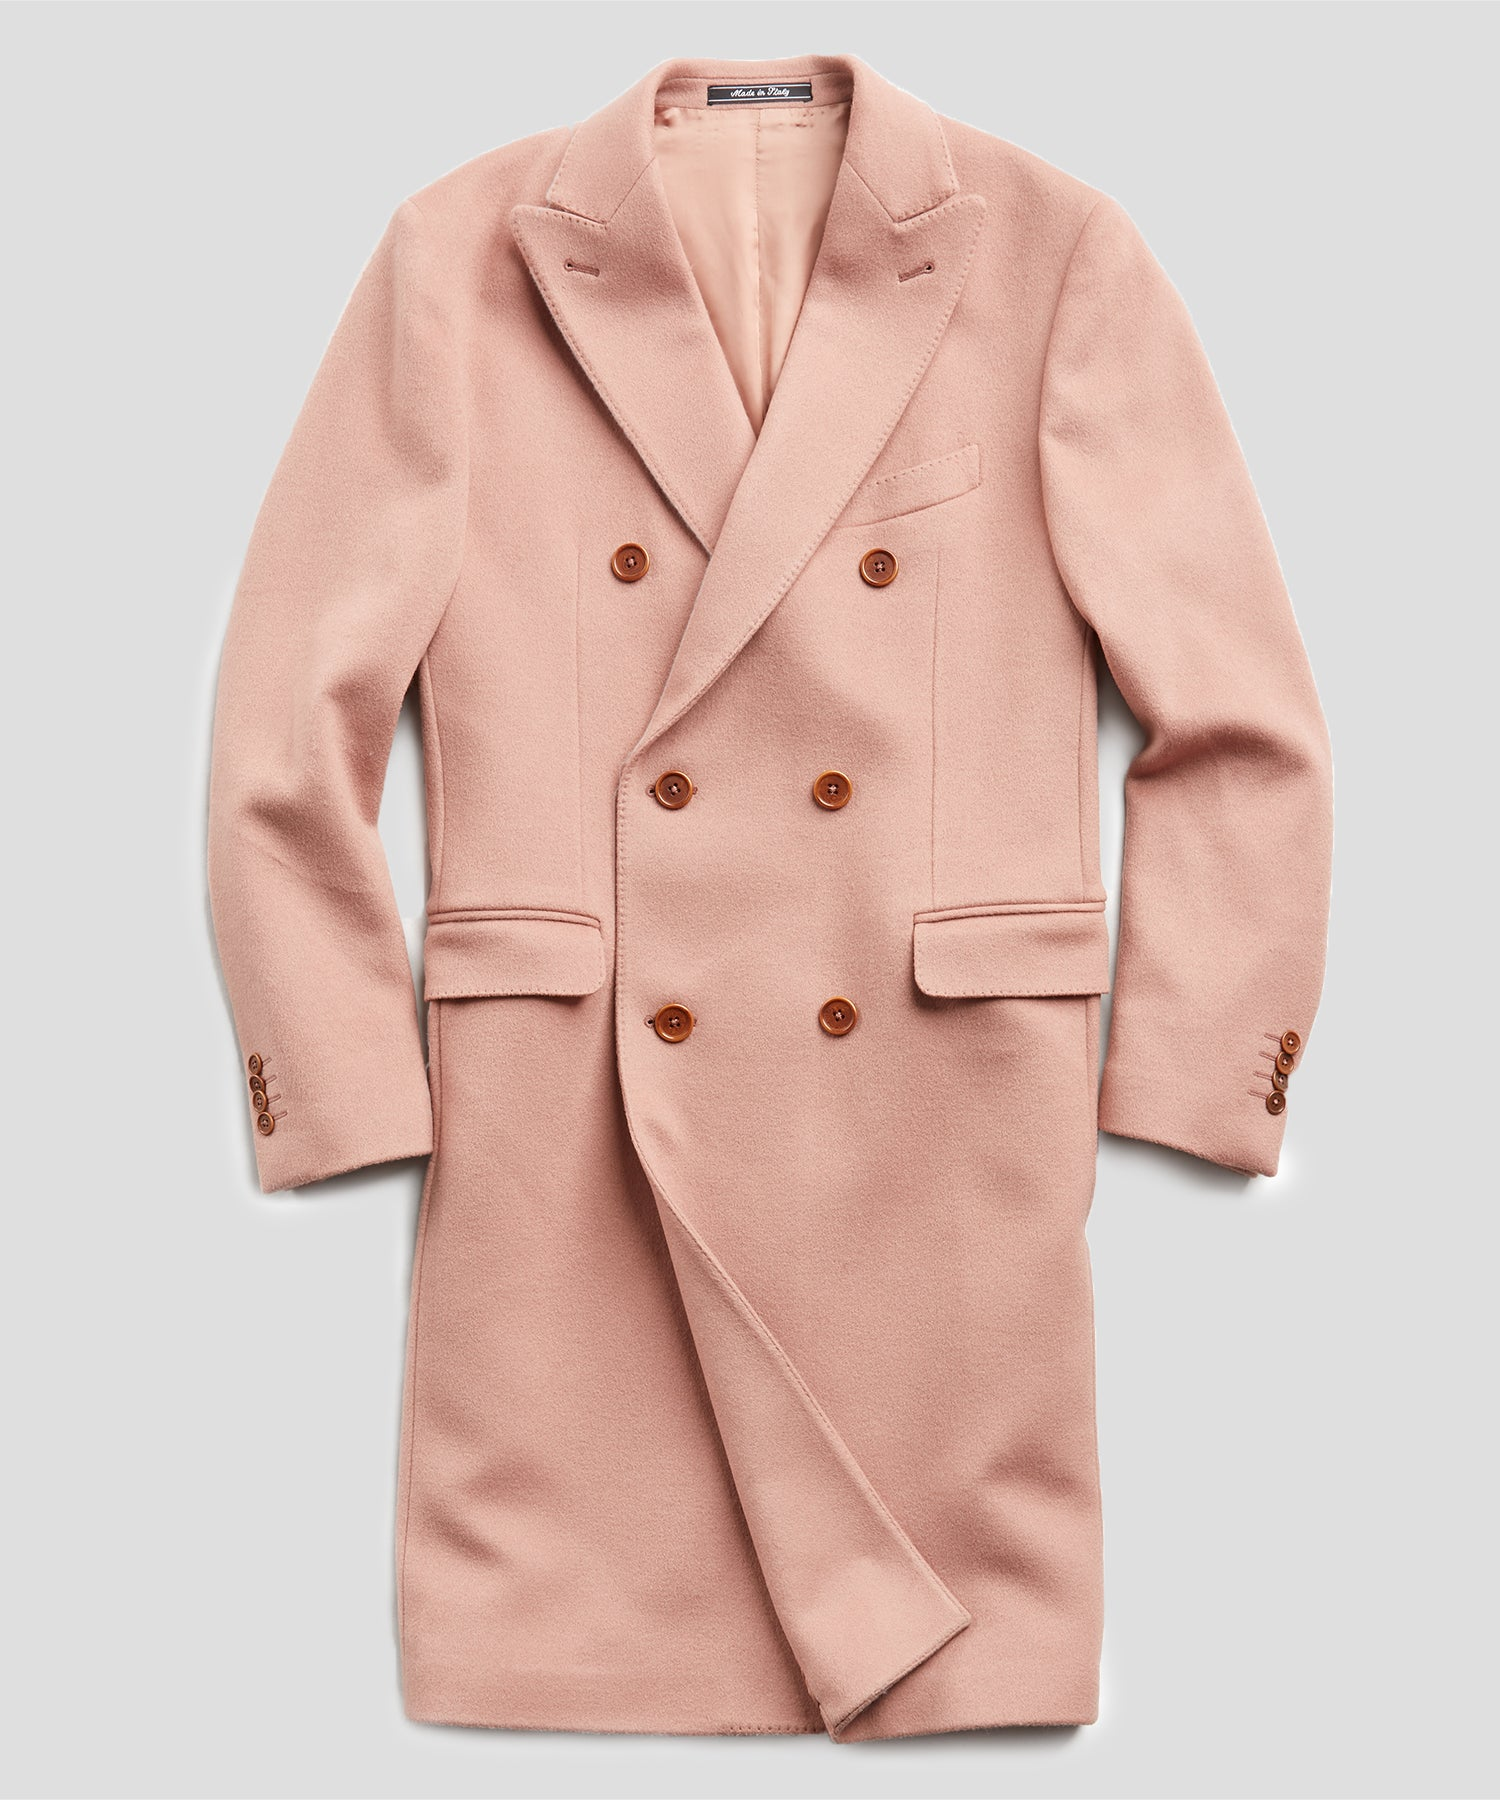 Italian Wool Cashmere Double Breasted Topcoat in Pink